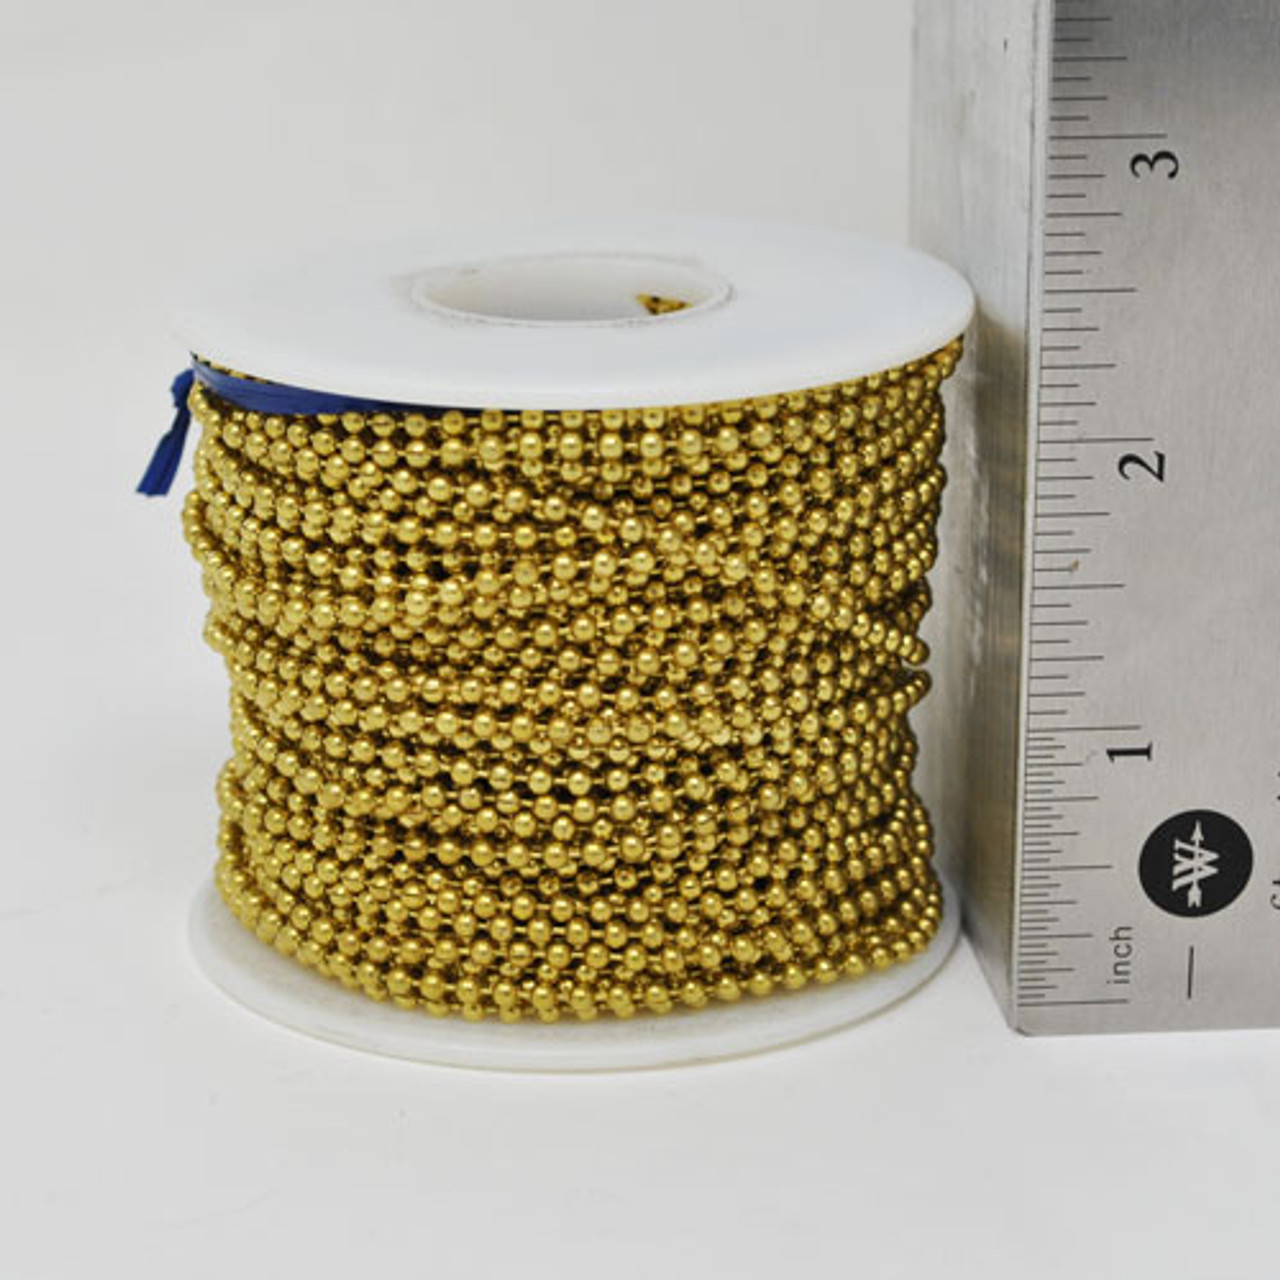 100 Feet of #3 or 2.4mm diameter yellow brass ball chain spool. Great length ball chain roll for crafters and DIYers.